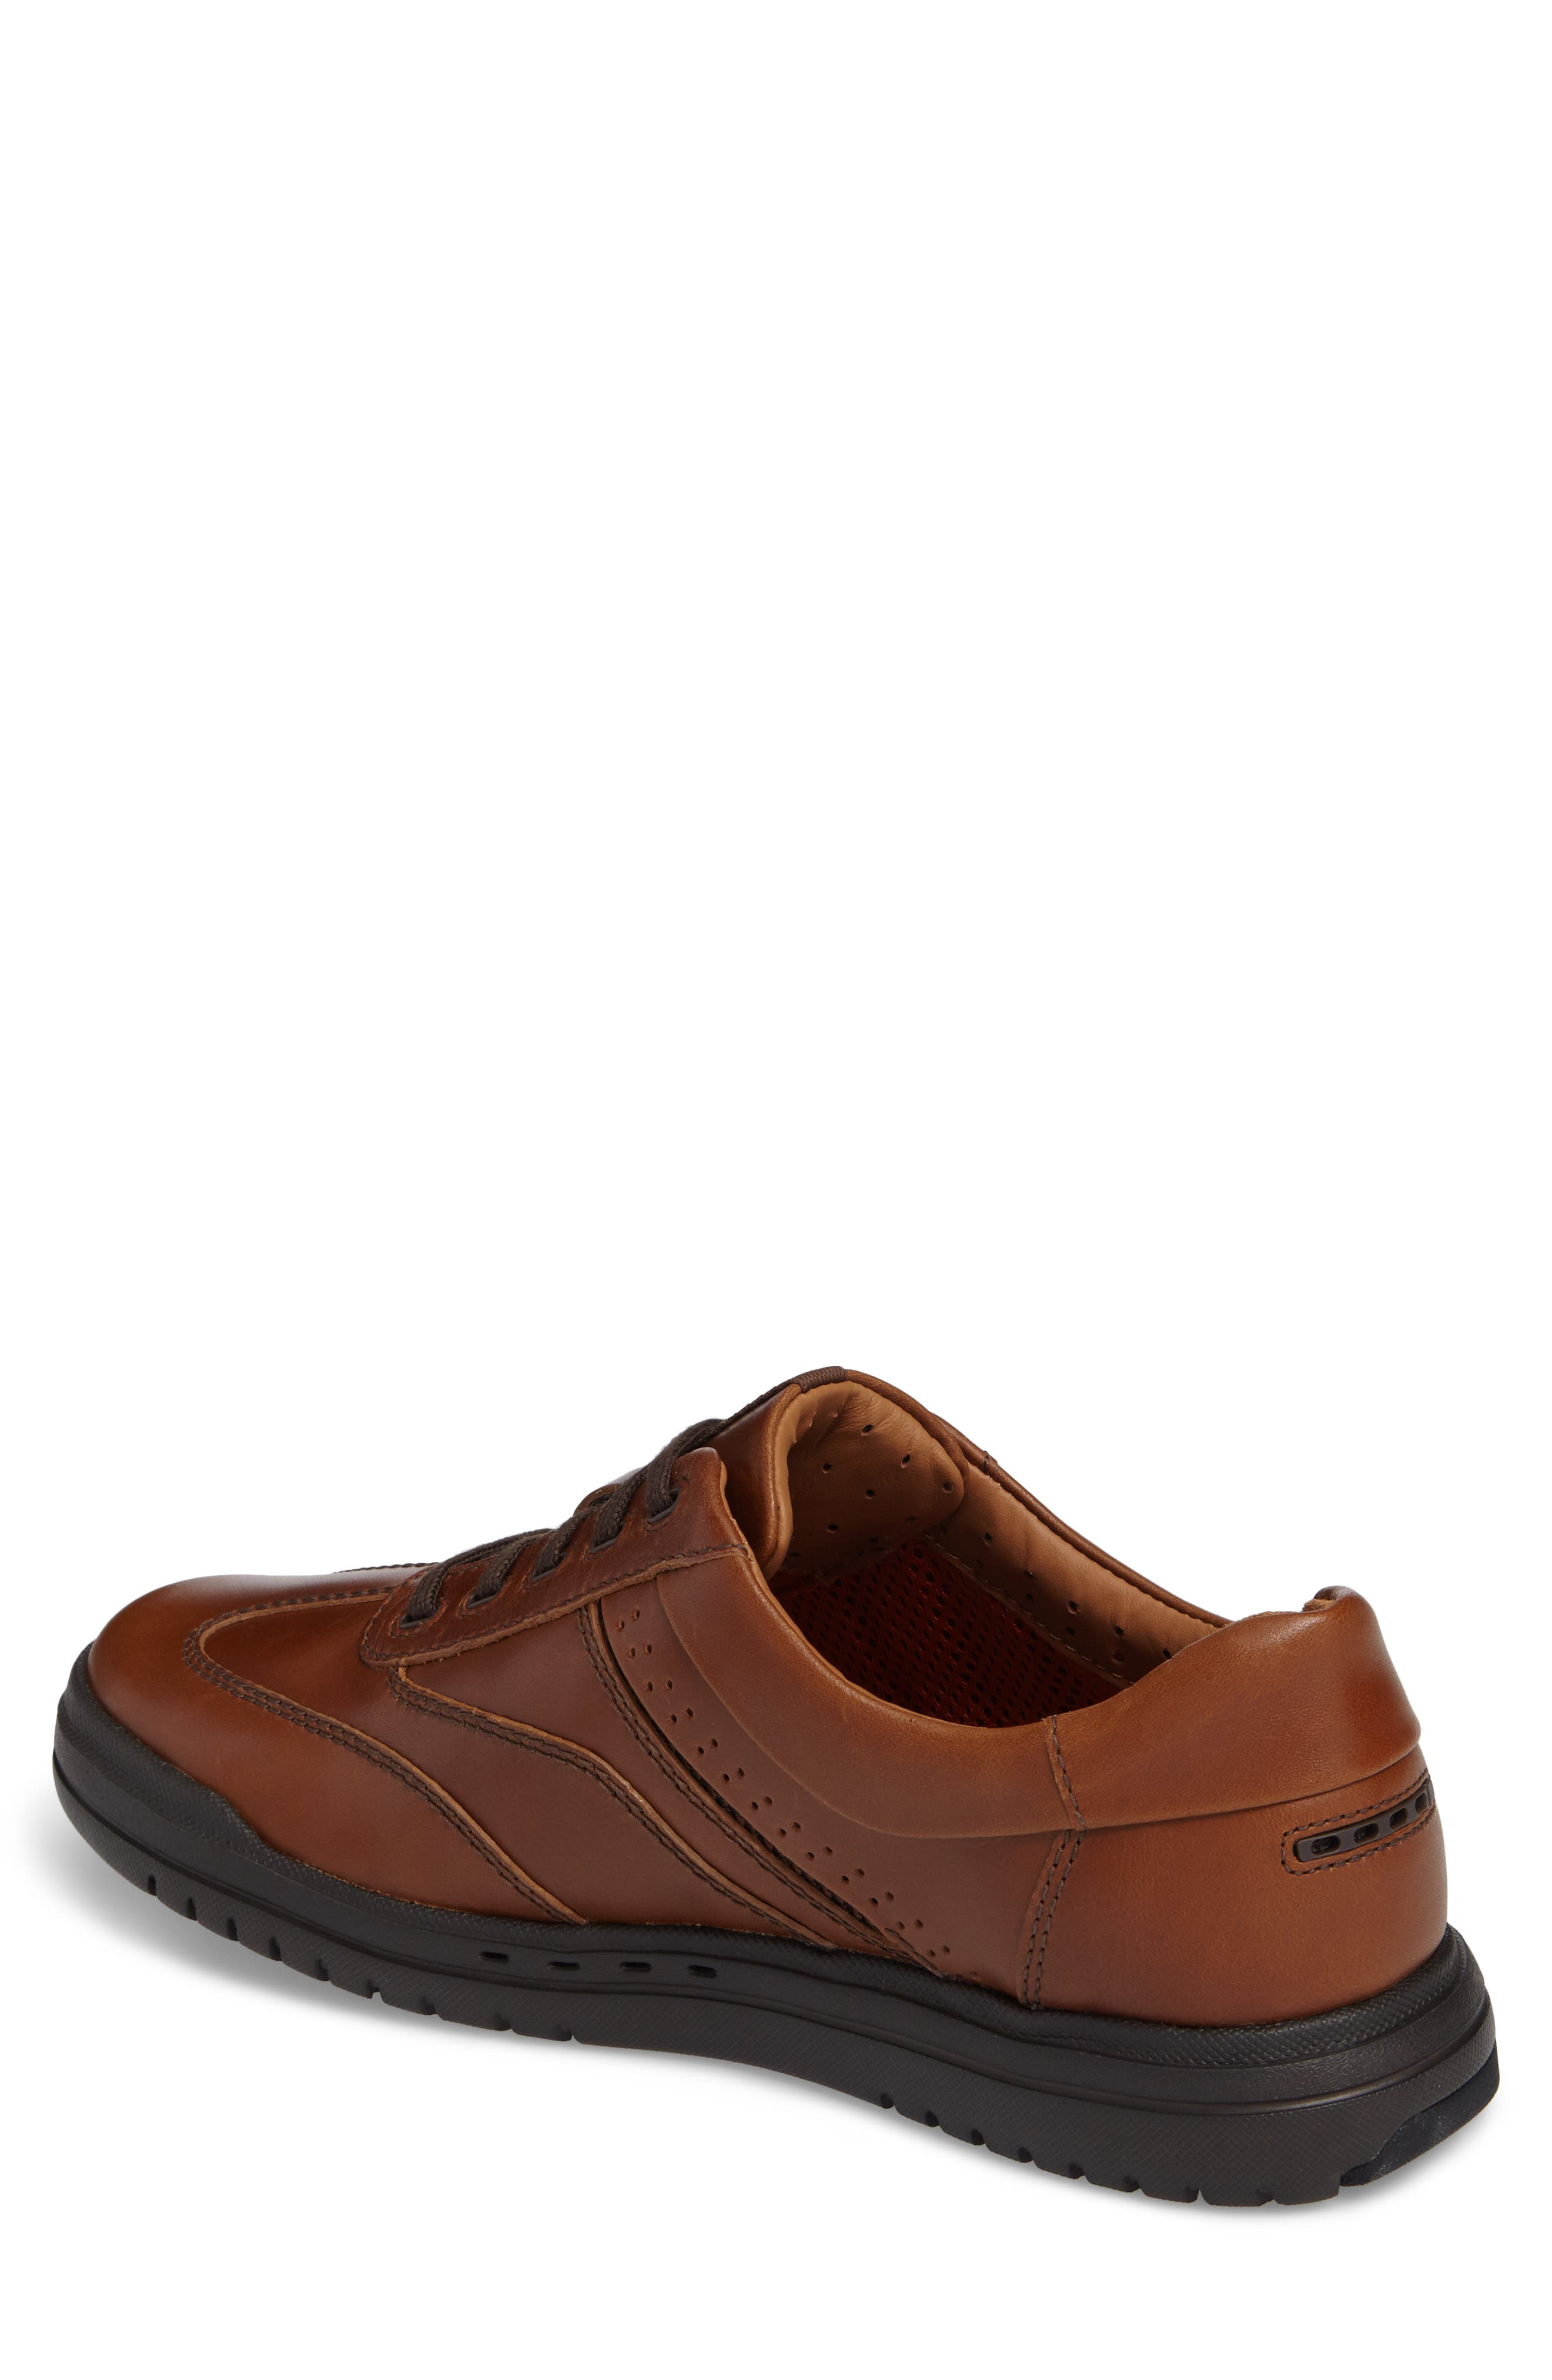 Un.Rhombus Fly Sneaker,                             Alternate thumbnail 2, color,                             Tan Leather